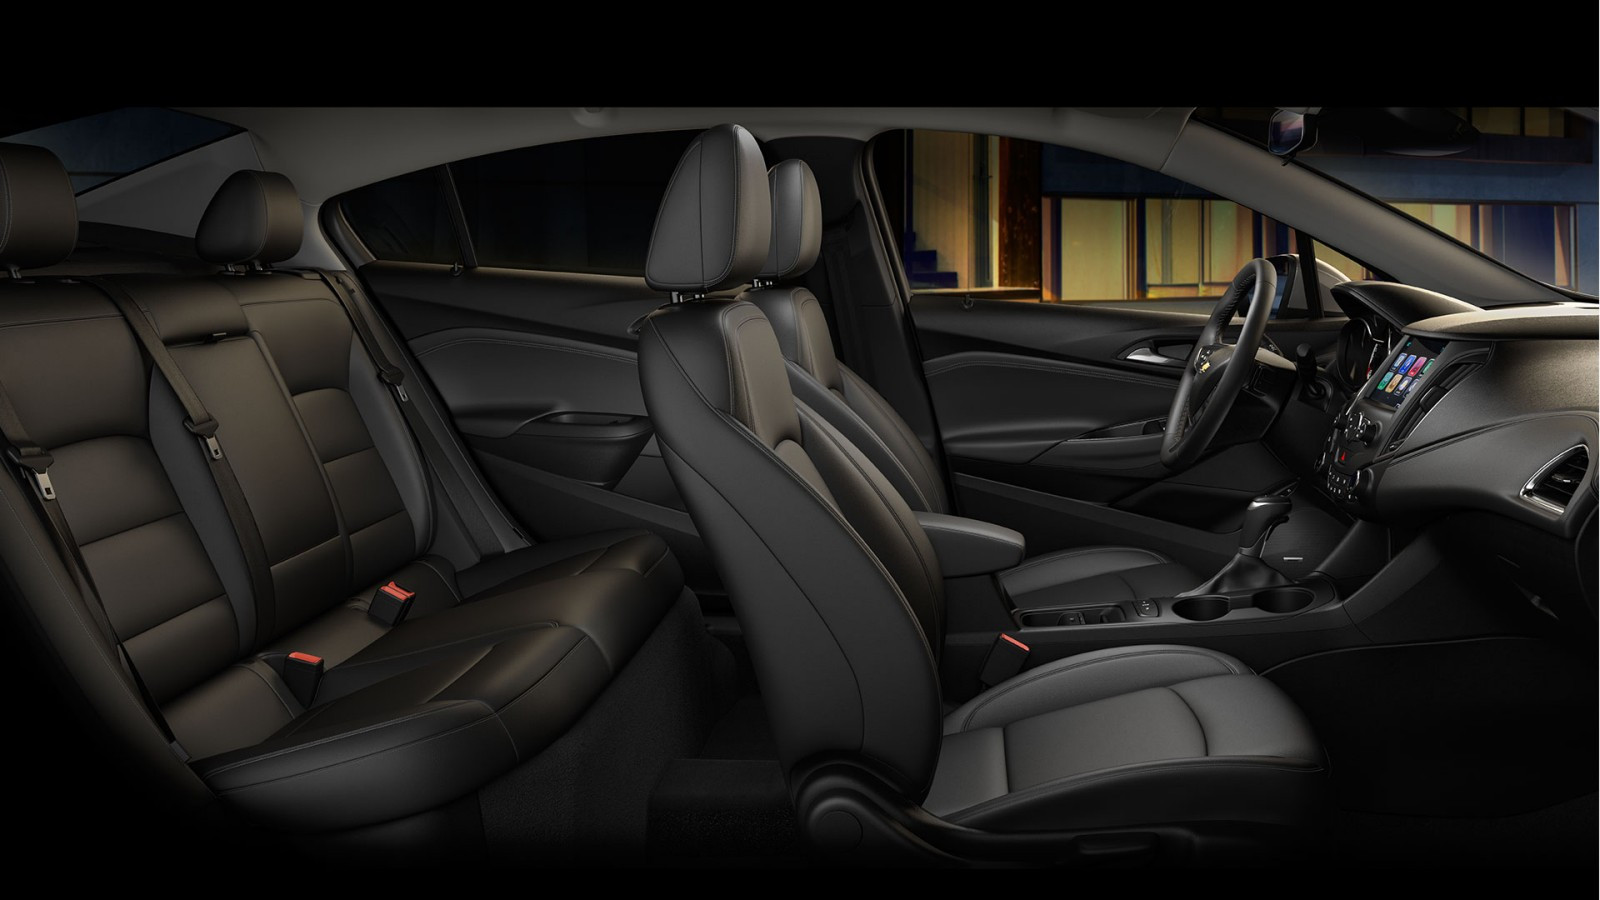 Chevrolet Cruze with Leather Seats